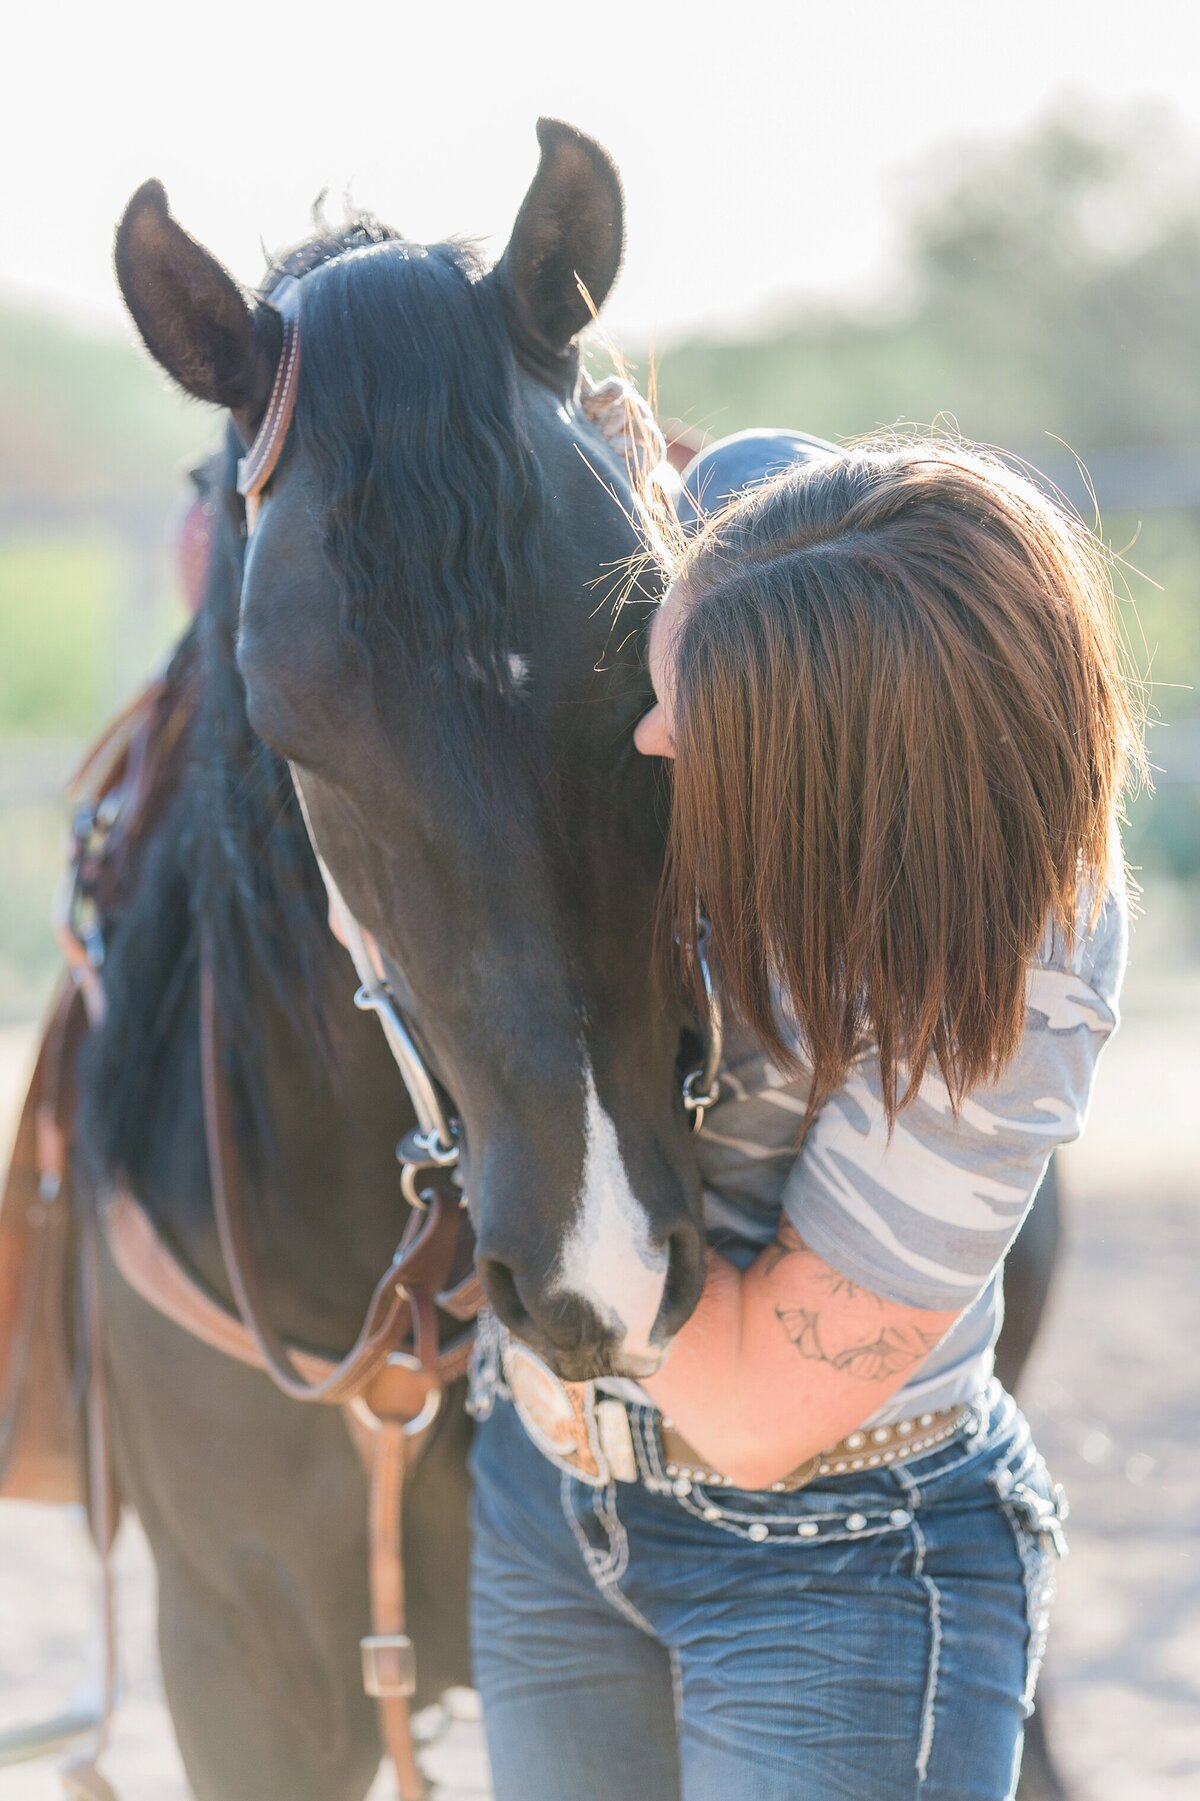 portrait of a girl hugging her horse as they are looking at each other